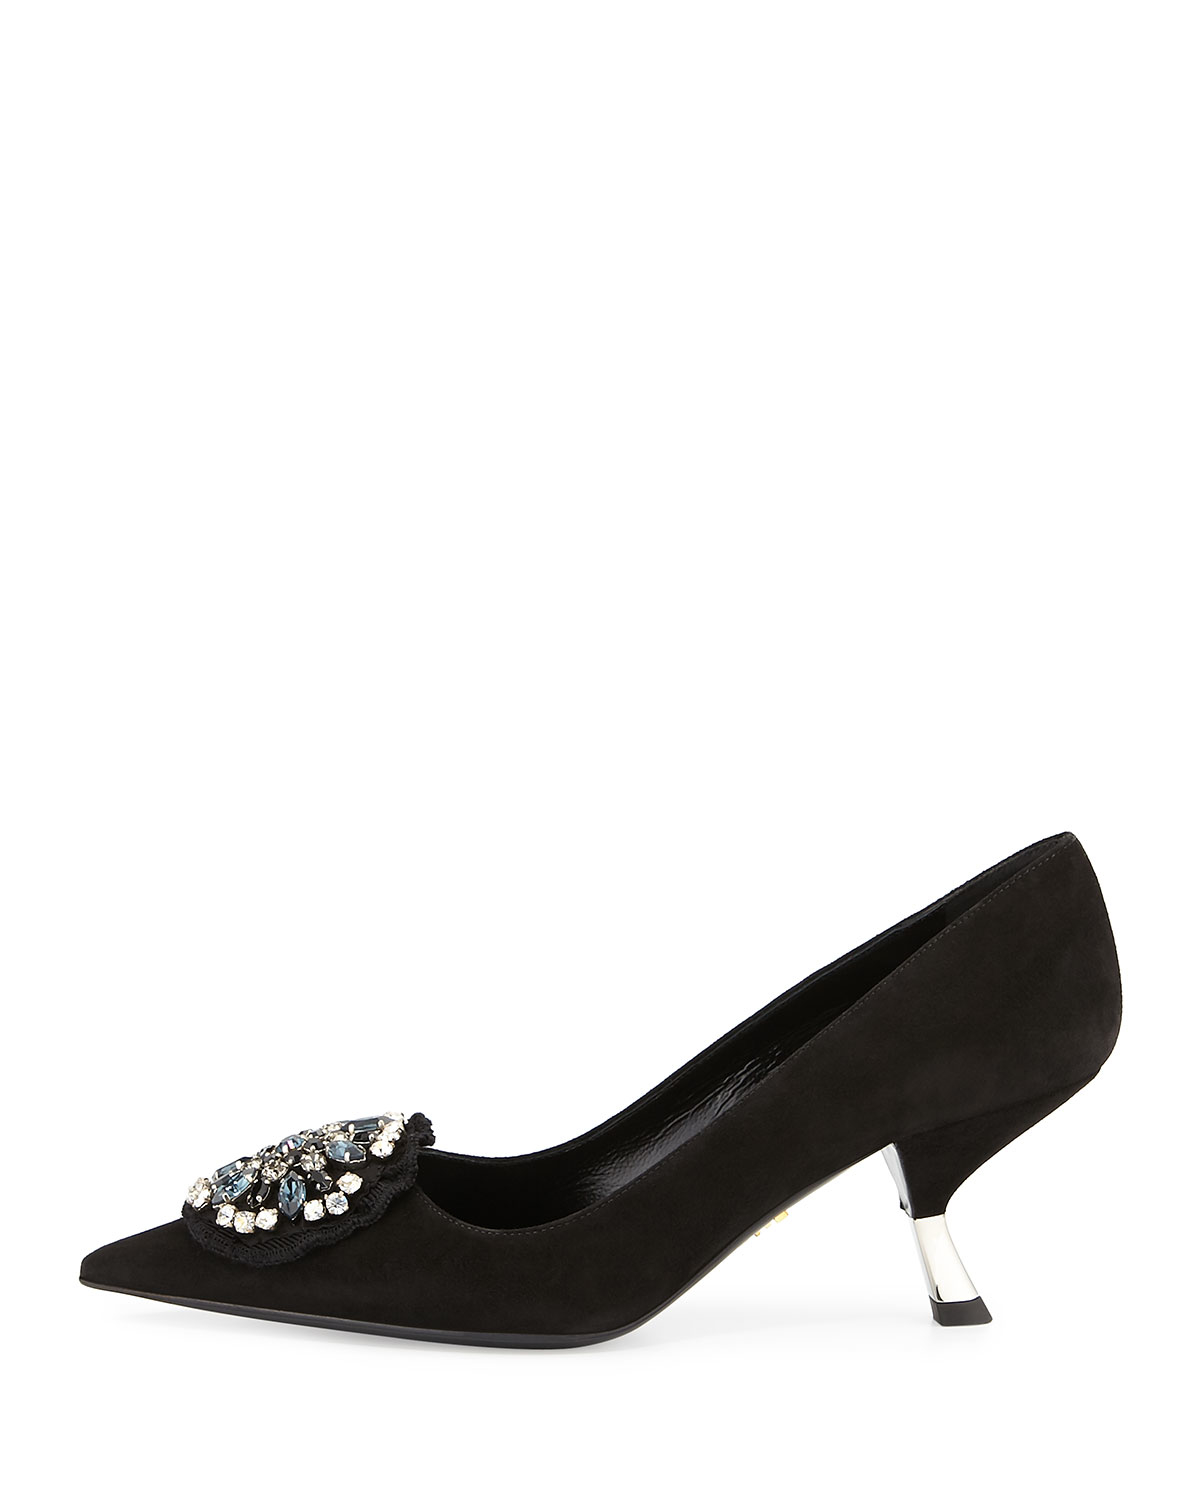 Prada Crystal-embellished suede pumps discount clearance DhuTHCnL